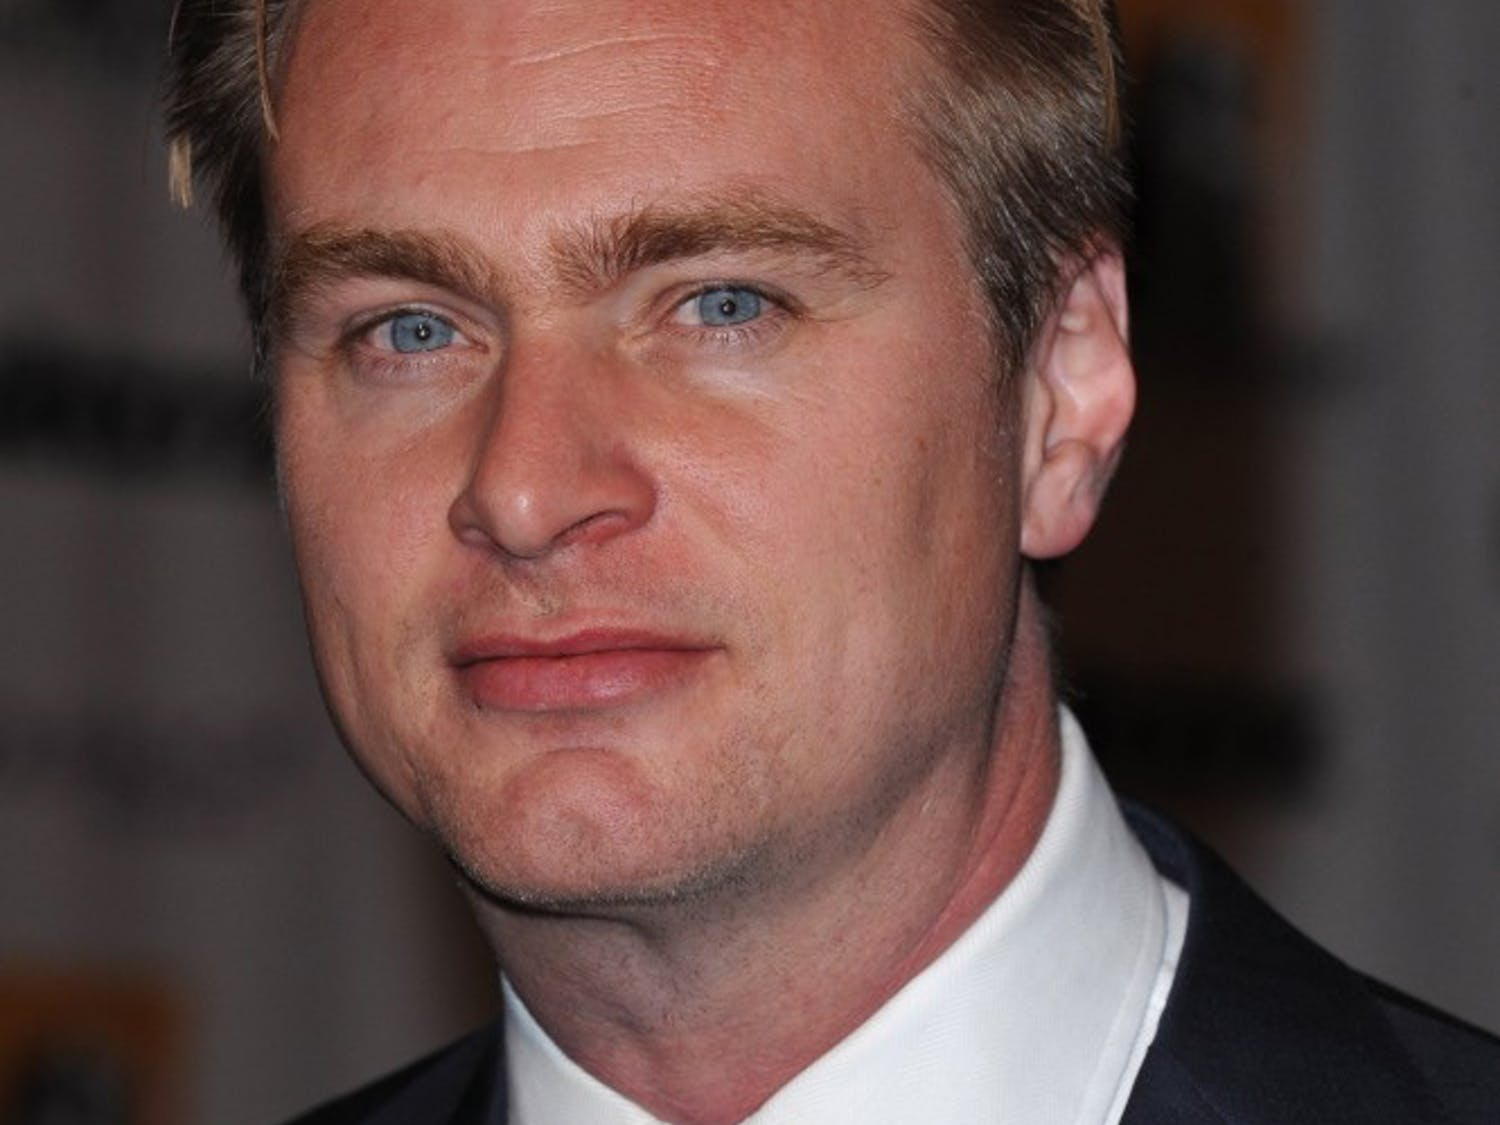 In this October 27, 2008 photograph, director Christopher Nolan attends the 12th Annual Hollywood Film Festival's Awards Gala held at the Beverly Hilton Hotel in Los Angeles, California. Nolan